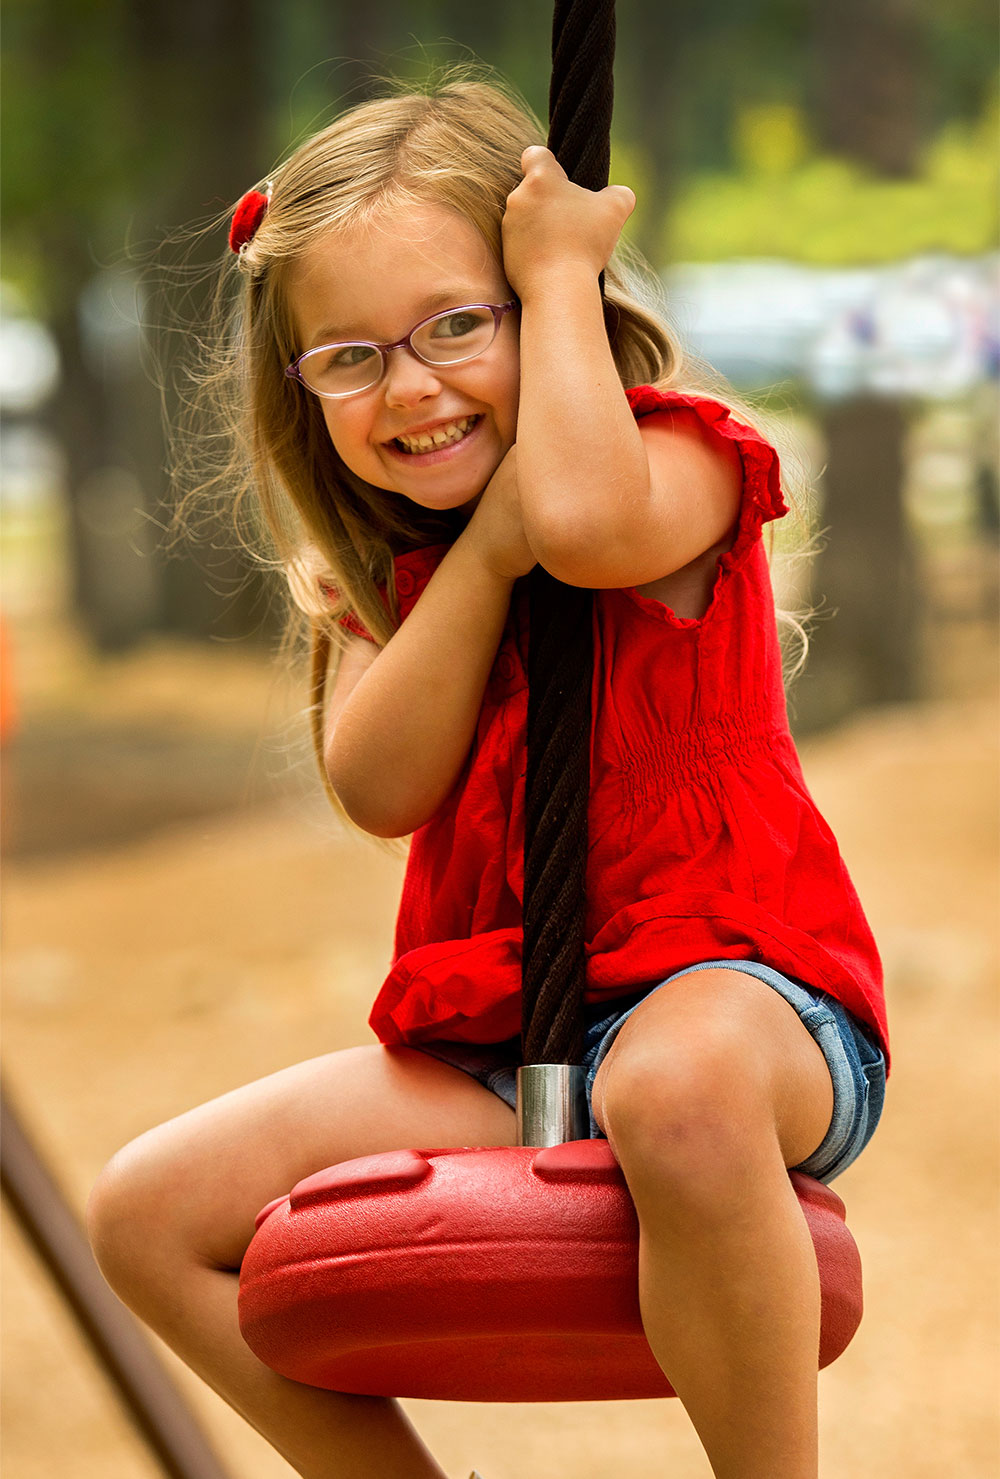 young, smiling girl at a playground